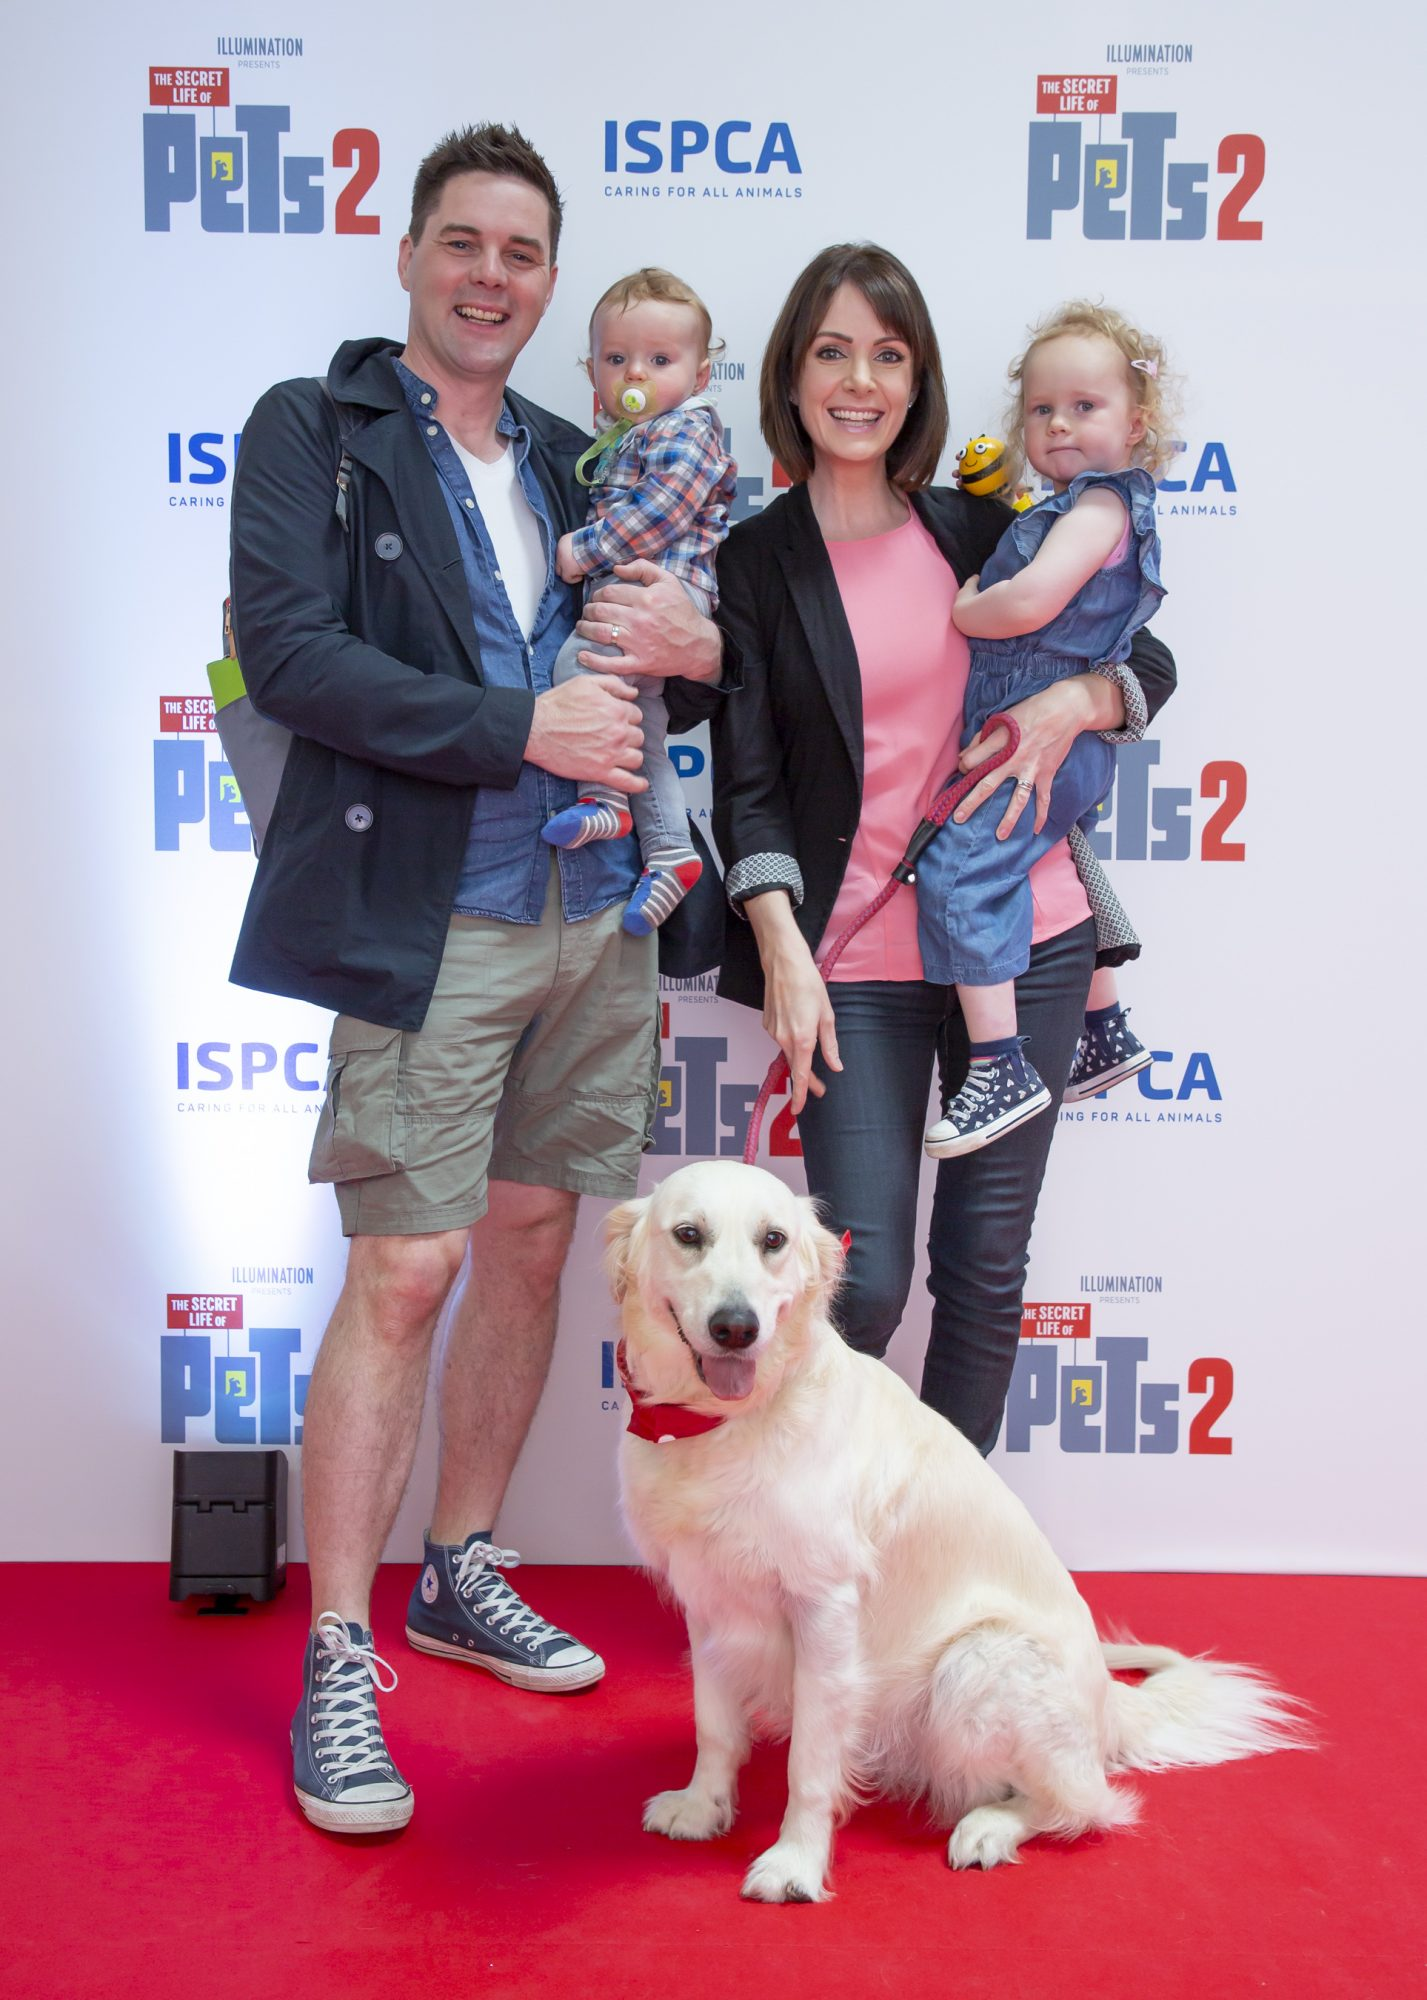 Marty Miller, Dee Woods Nathan 1 Eleanor 2 with dog Frankie pictured at the Irish premiere screening of The Secret Life of Pets 2 at Odeon Point Square, Dublin hosted by Universal Pictures in association with the ISPCA. The Secret Life of Pets 2 is in cinemas from Friday May 24th. Photo: Anthony Woods